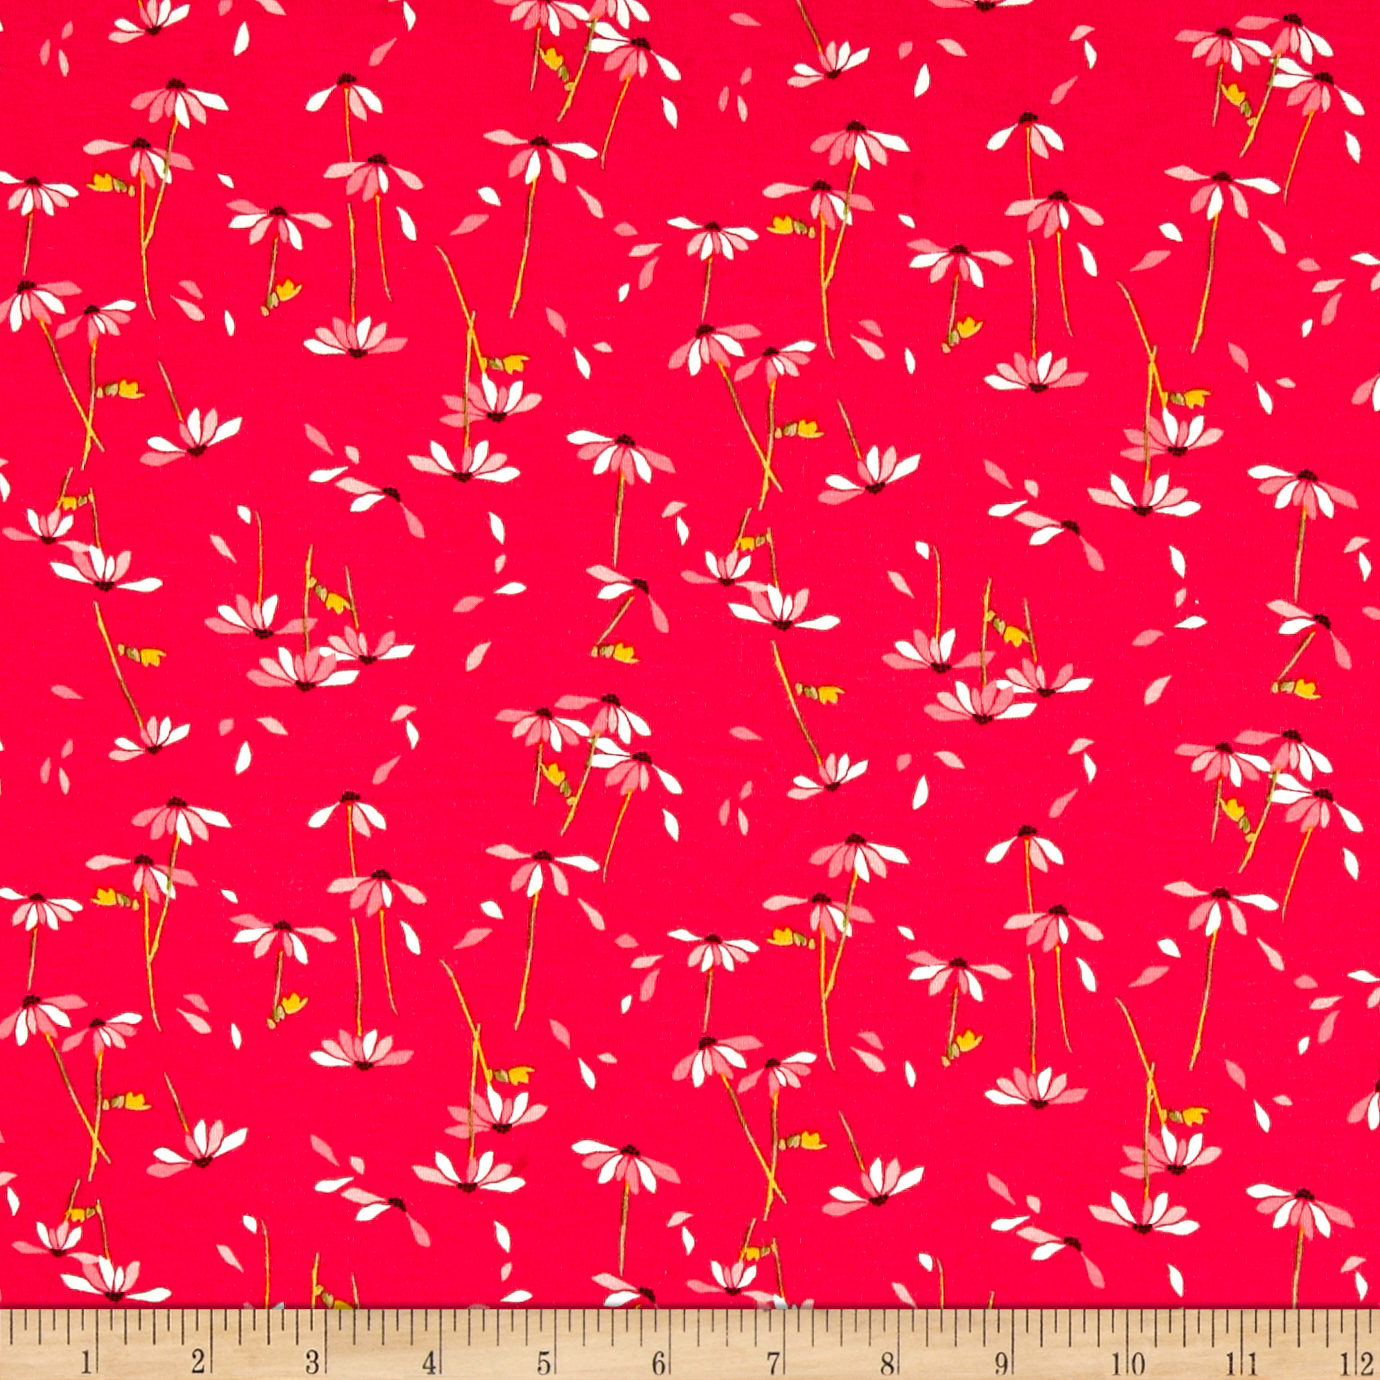 Art Gallery Abloom Fusion Jersey Knit He Loves Me Abloom Fabric by Art Gallery in USA